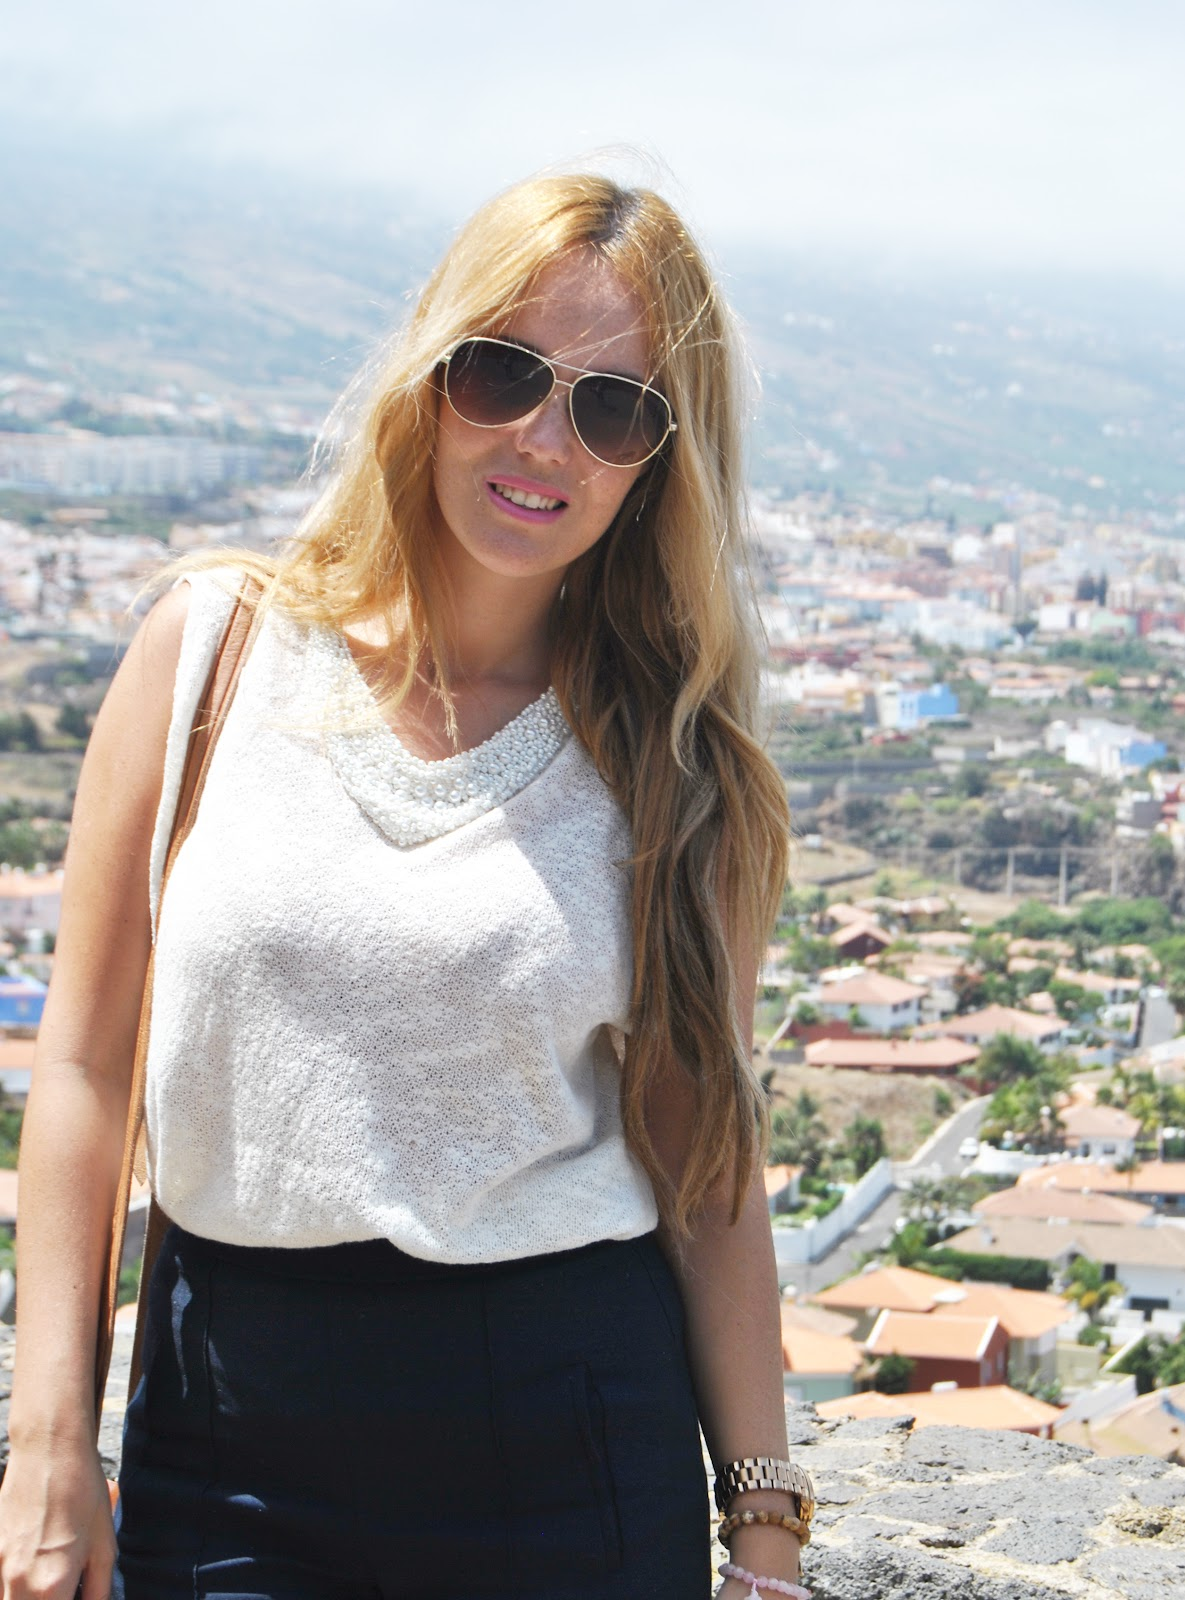 nery hdez, aviator look, shorts, summer looks